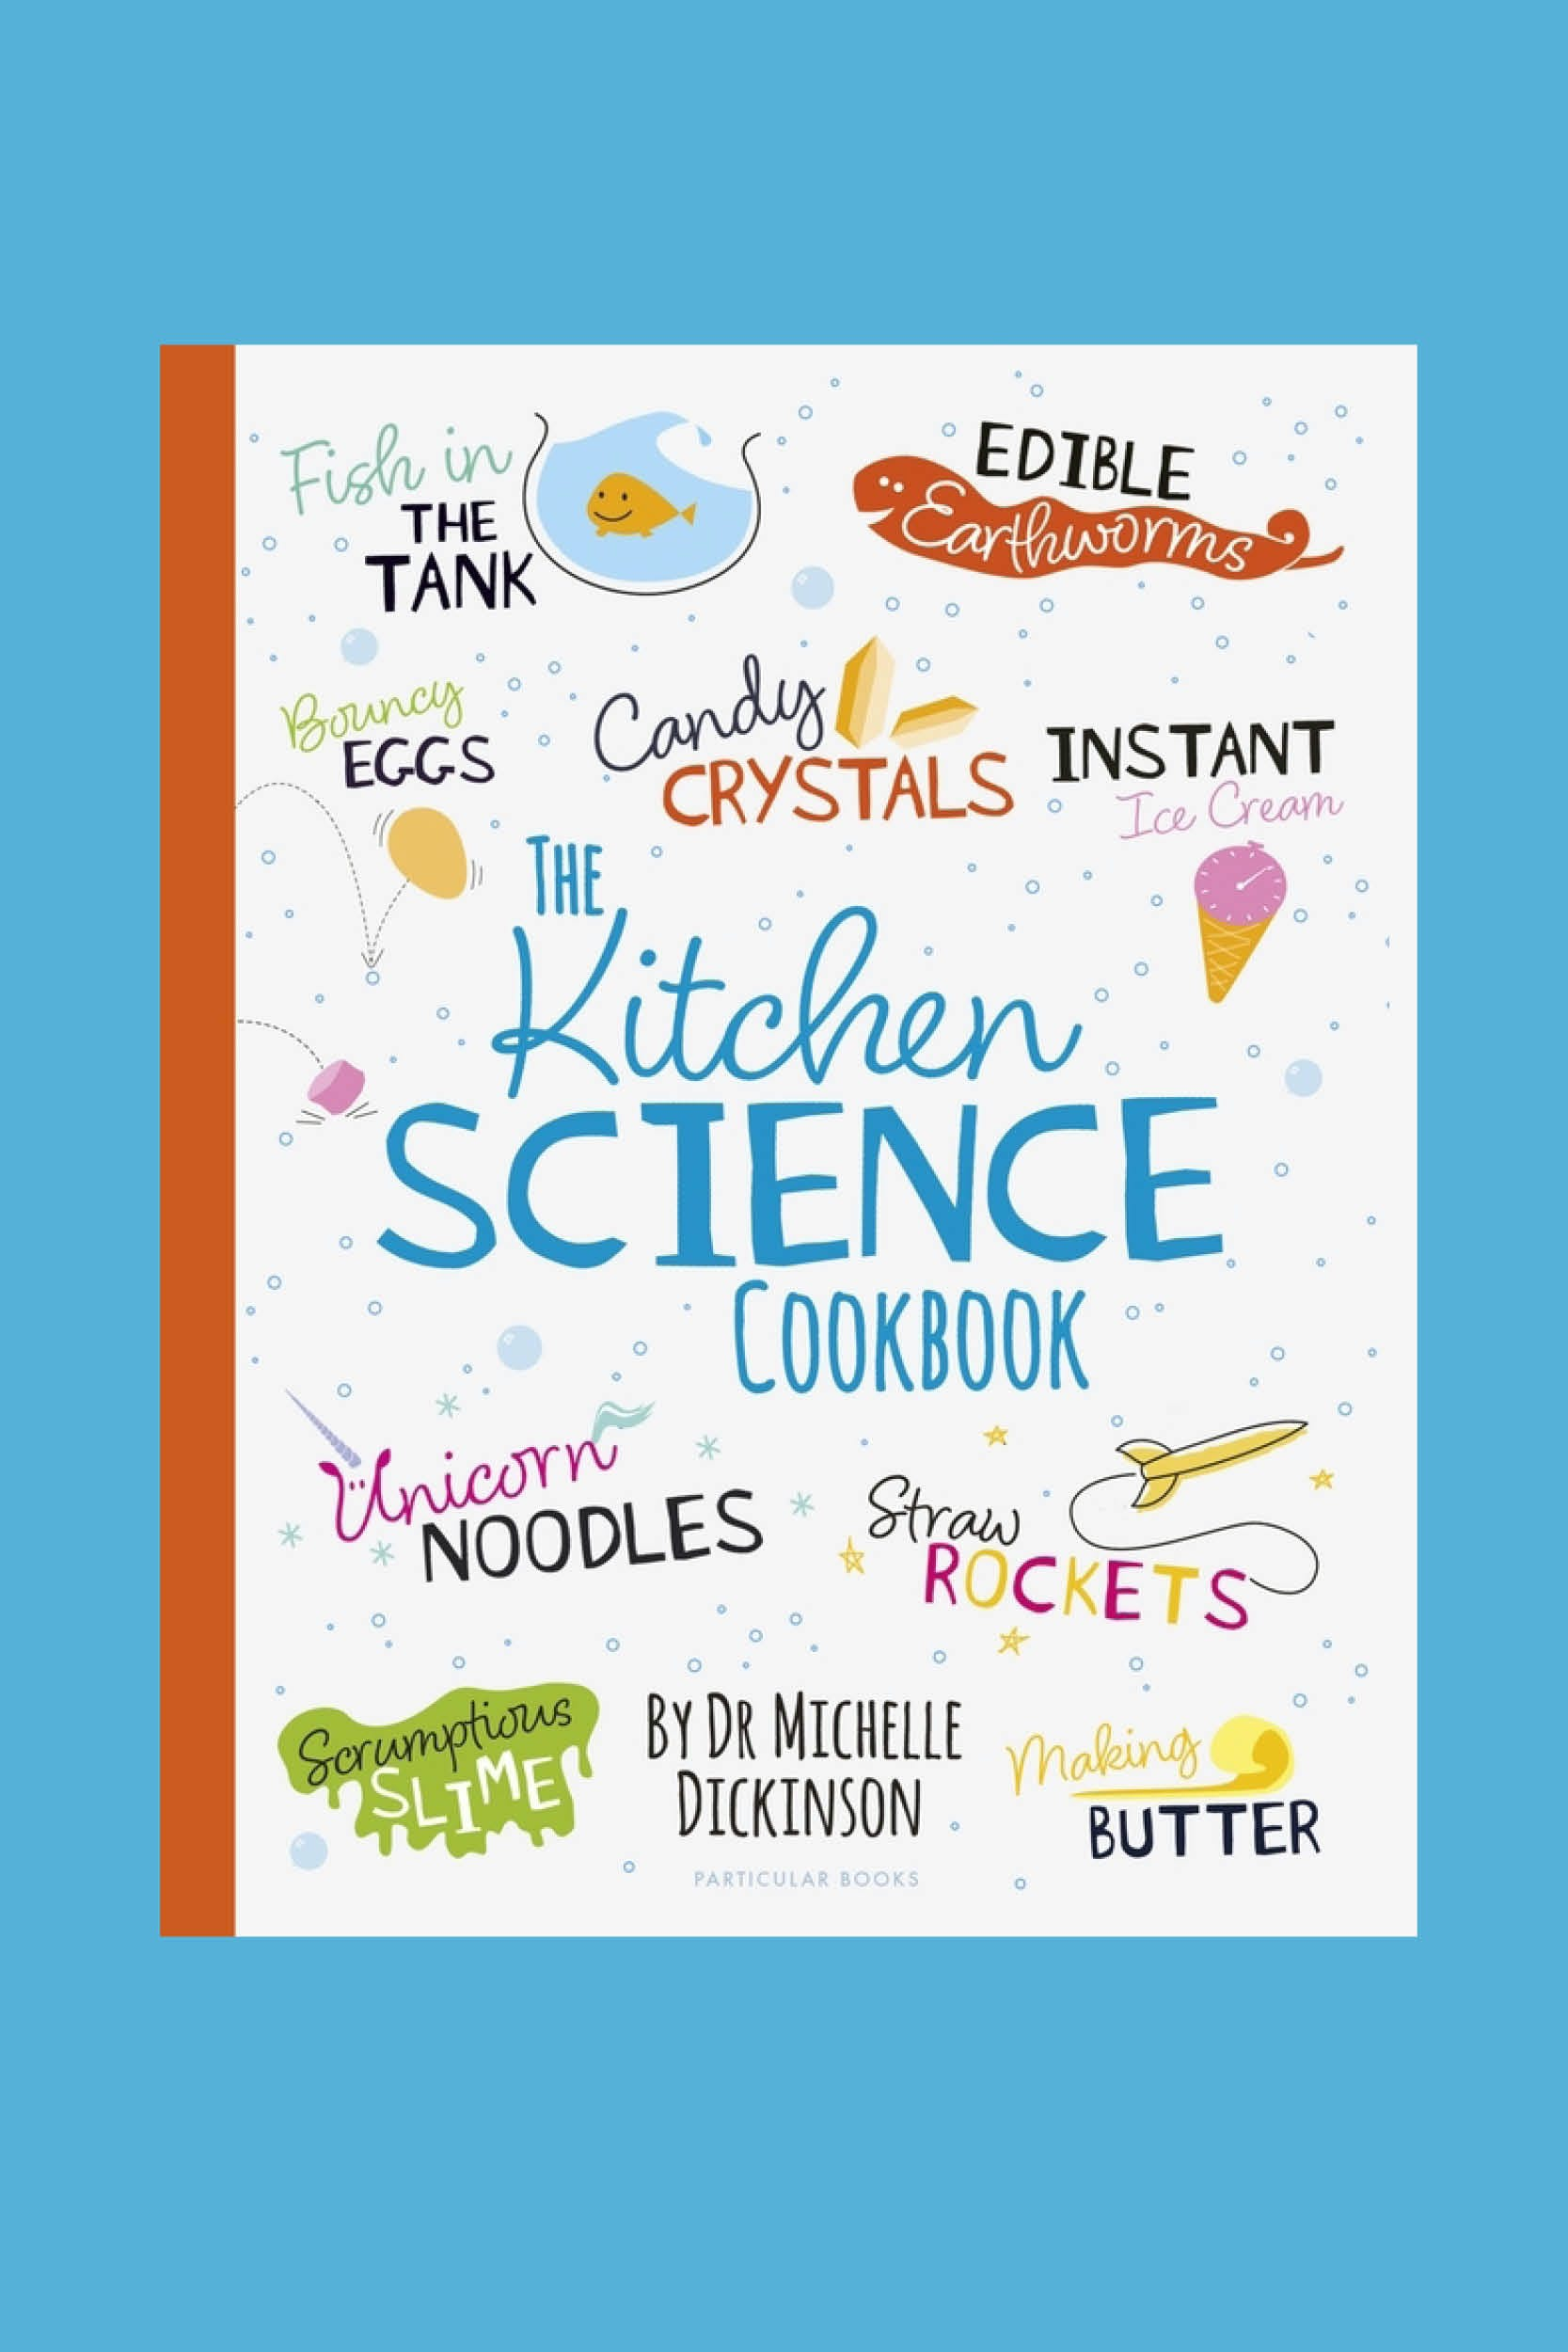 Bouncing Bubbles from The Kitchen Science Cookbook